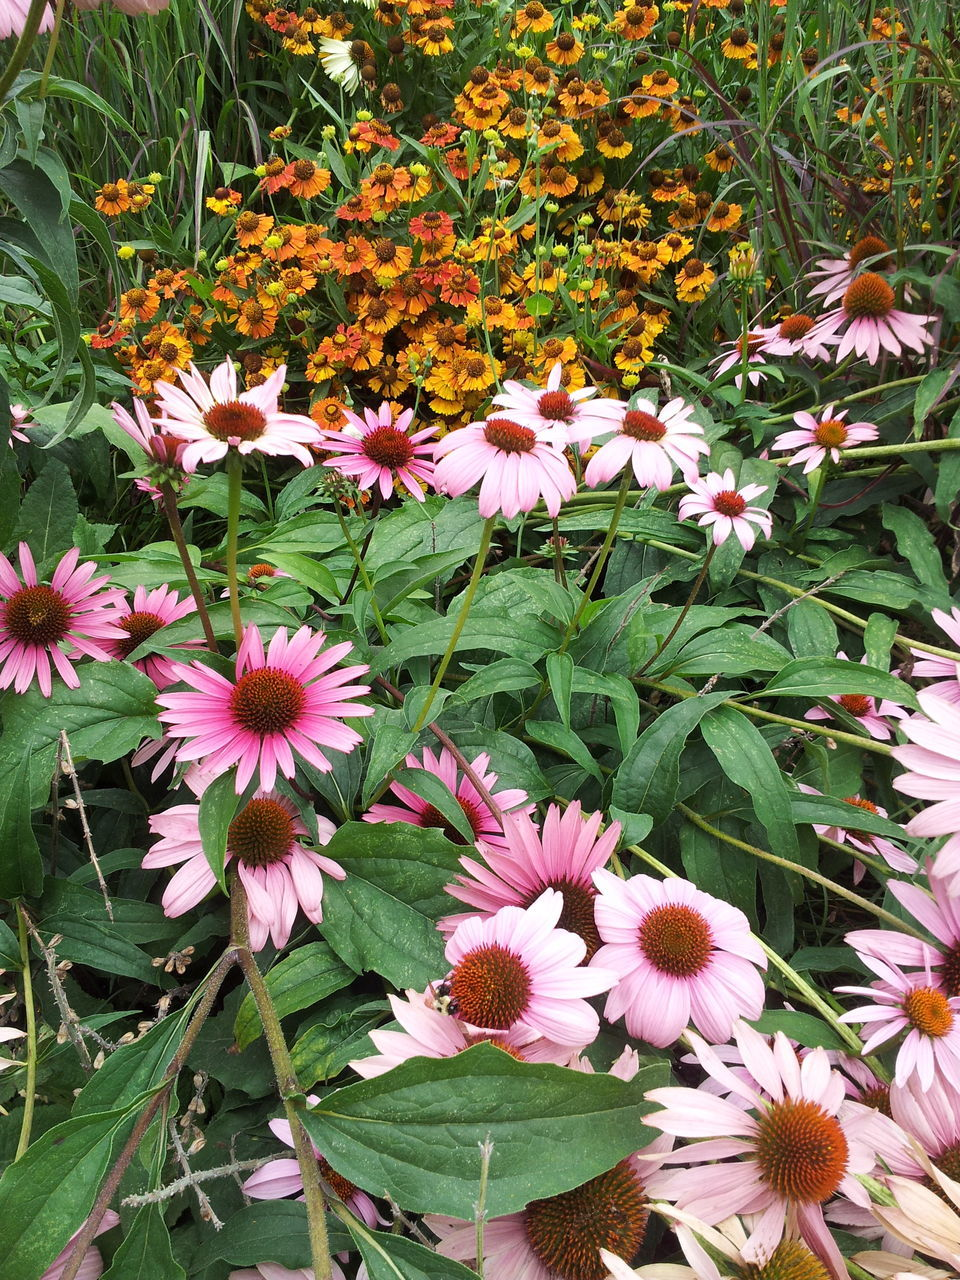 flower, growth, beauty in nature, leaf, fragility, petal, nature, plant, blooming, freshness, flower head, day, no people, outdoors, high angle view, pink color, park - man made space, green color, eastern purple coneflower, close-up, periwinkle